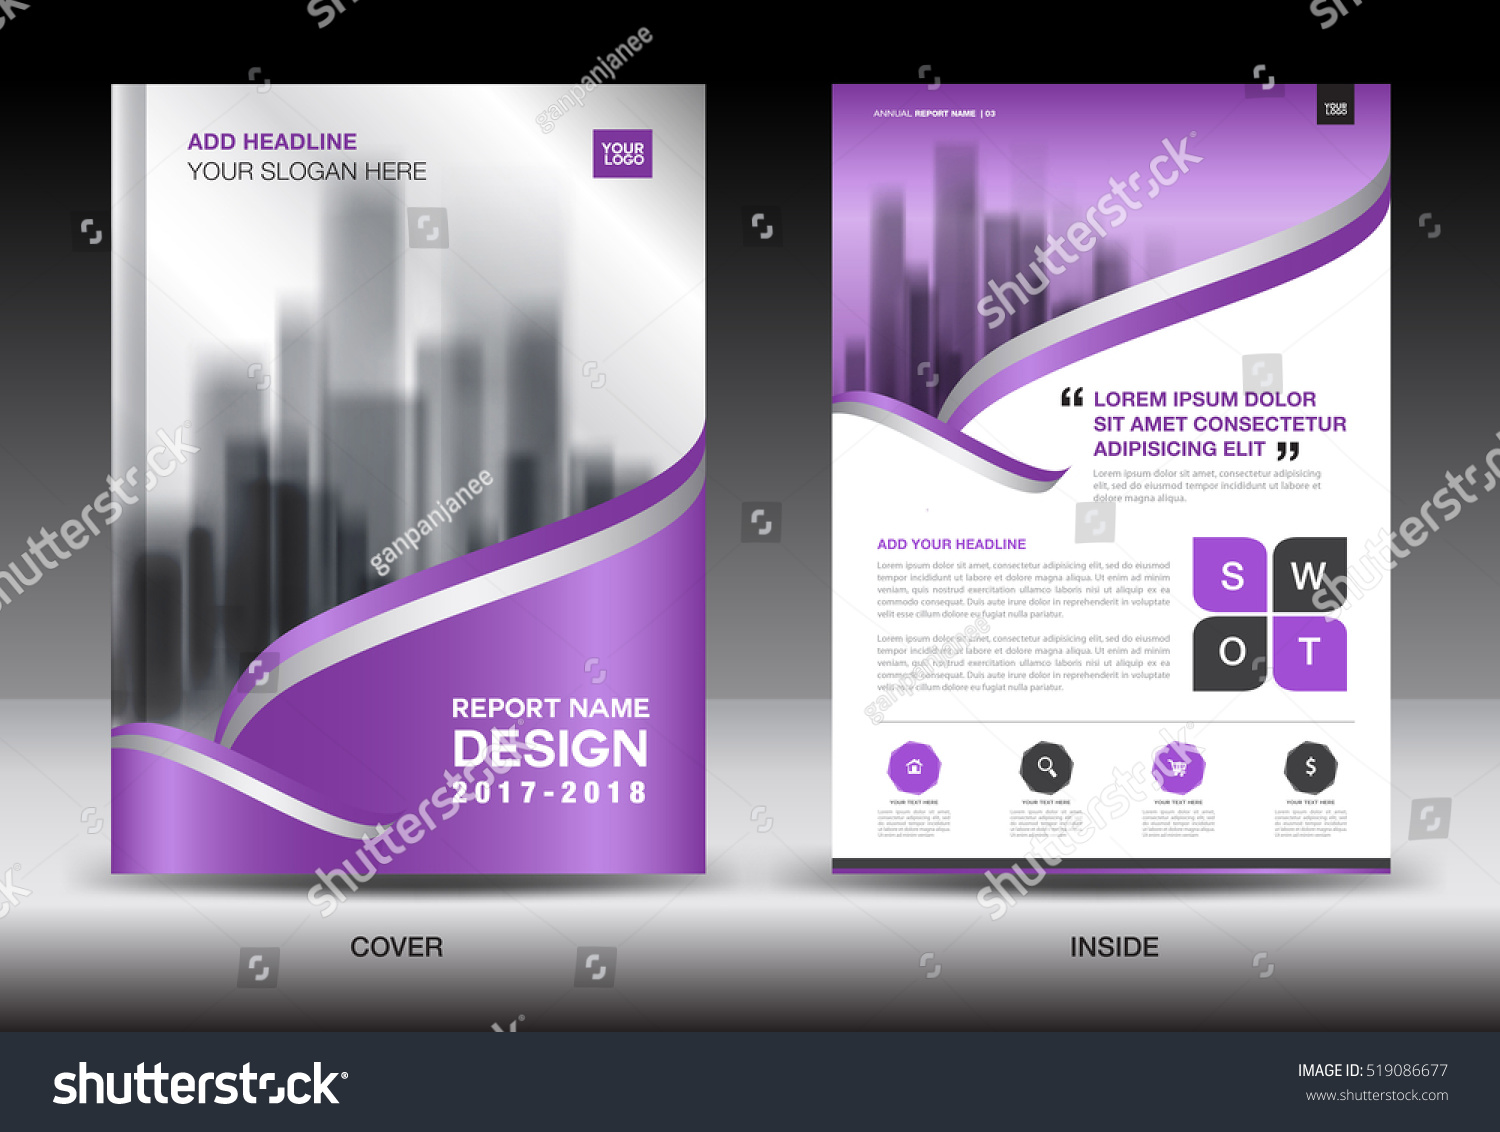 annual report brochure flyer template purple stock vector annual report brochure flyer template purple cover design business layout advertisement book